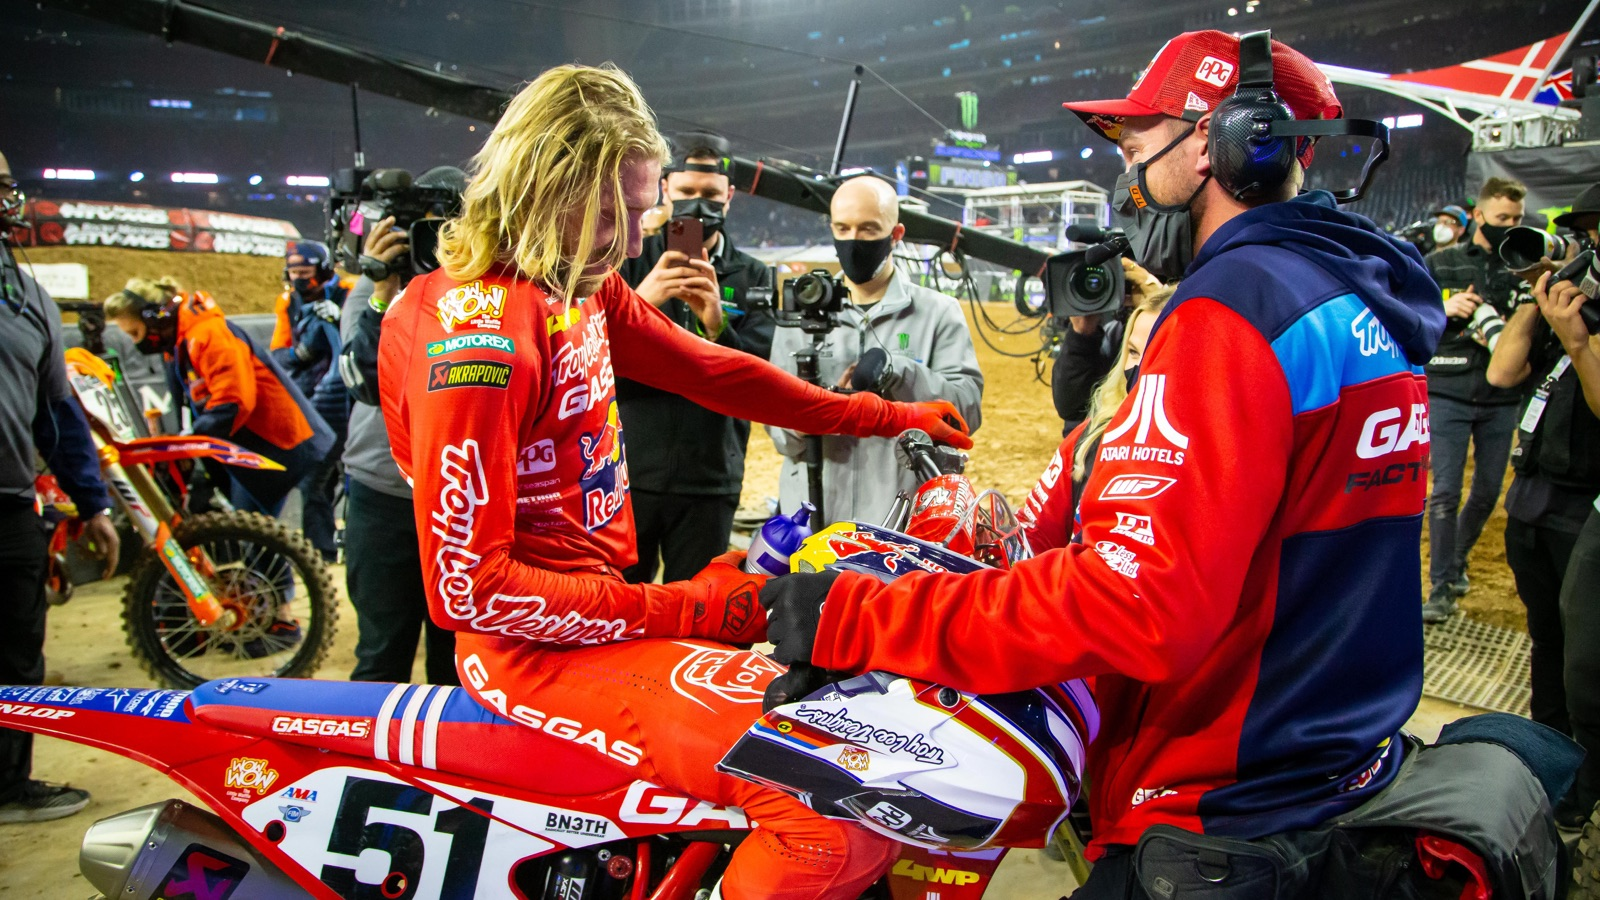 Will Justin Barcia repeat the pattern and fail to repeat his season win?